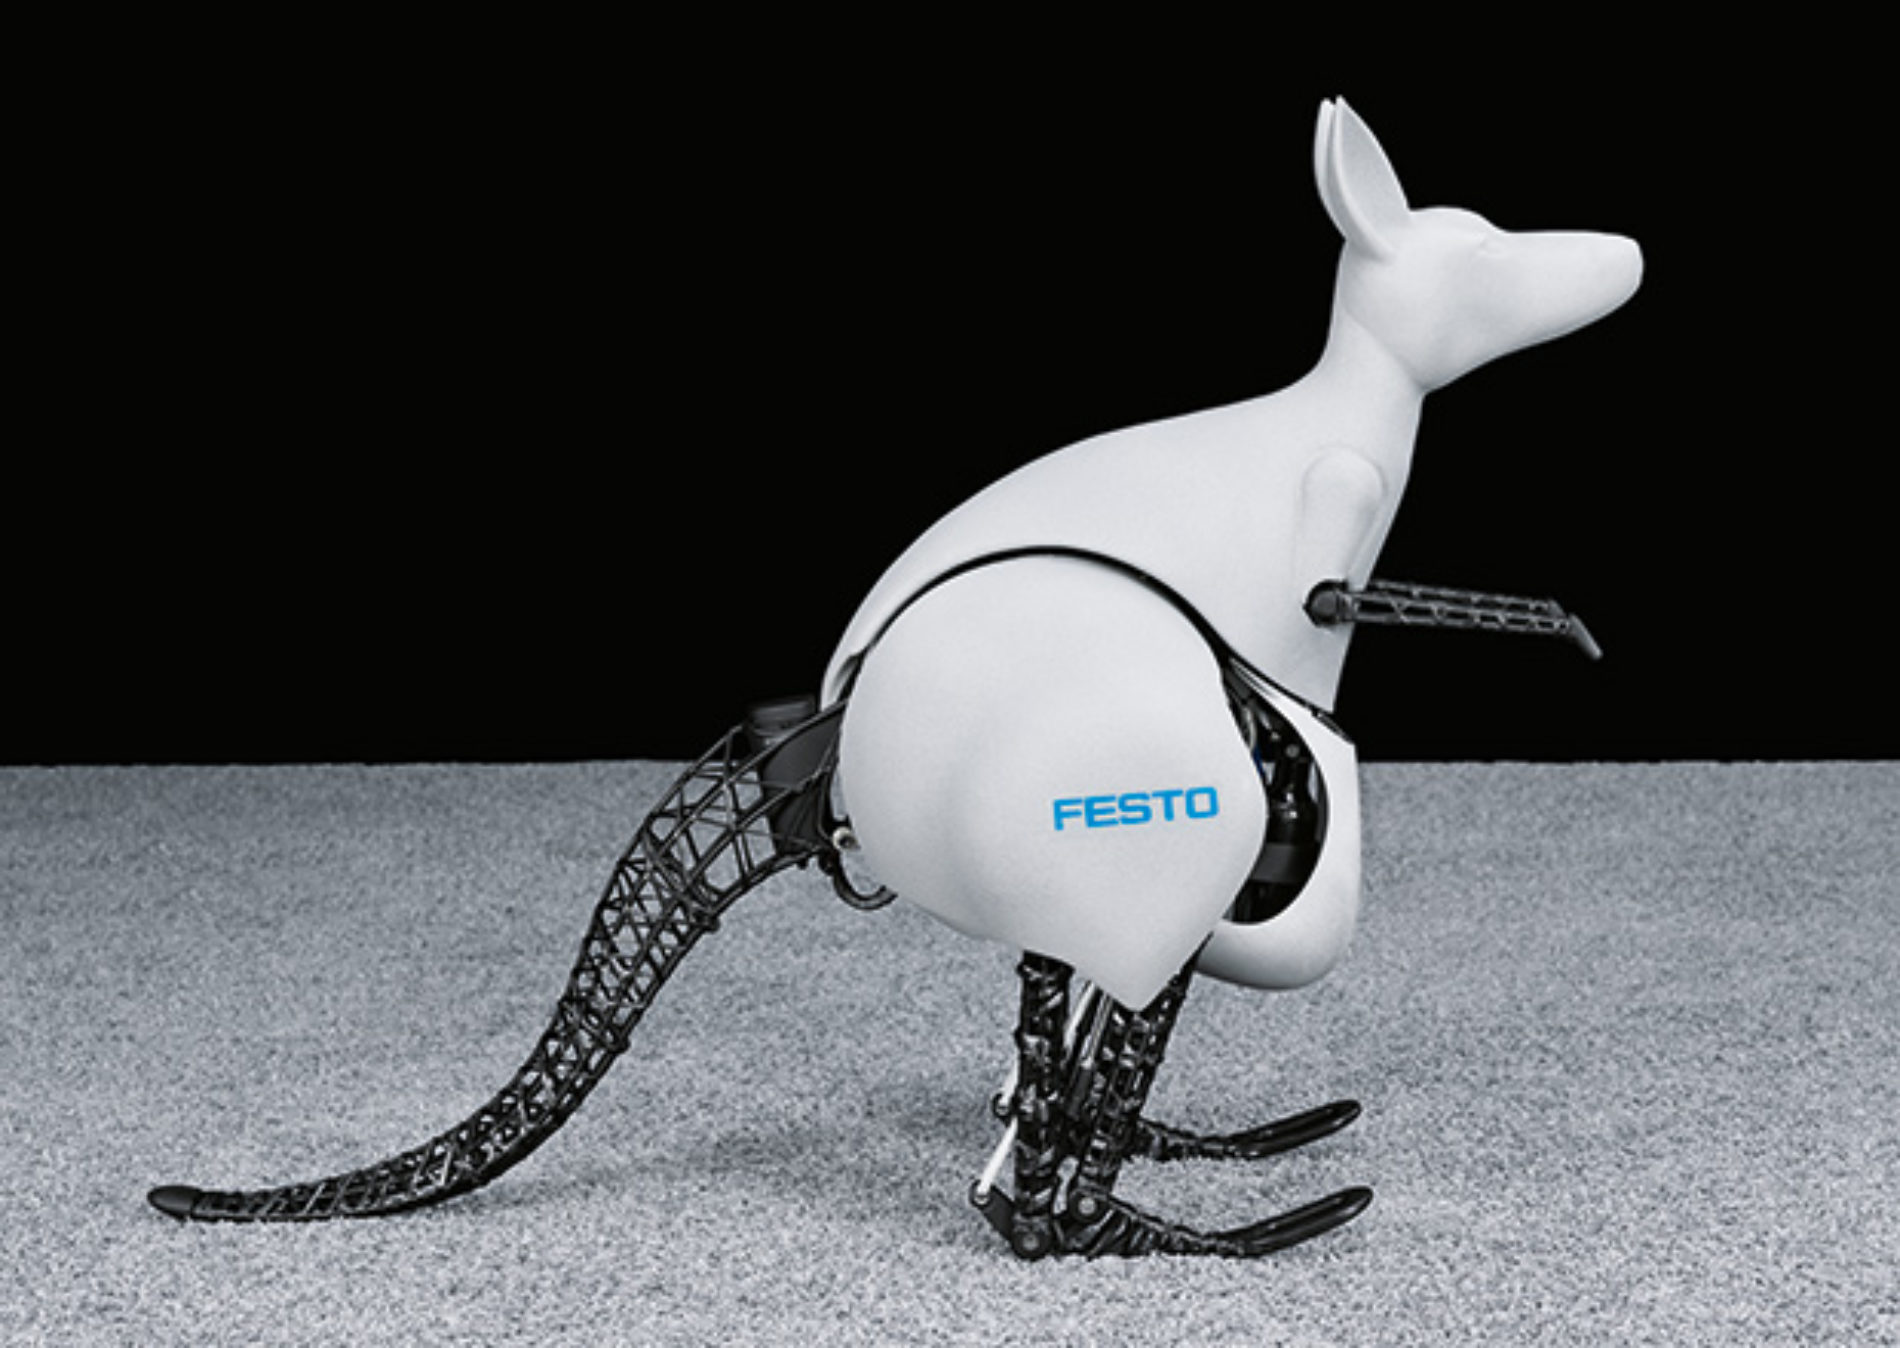 Festo's Newest Robot Is a Hopping Bionic Kangaroo